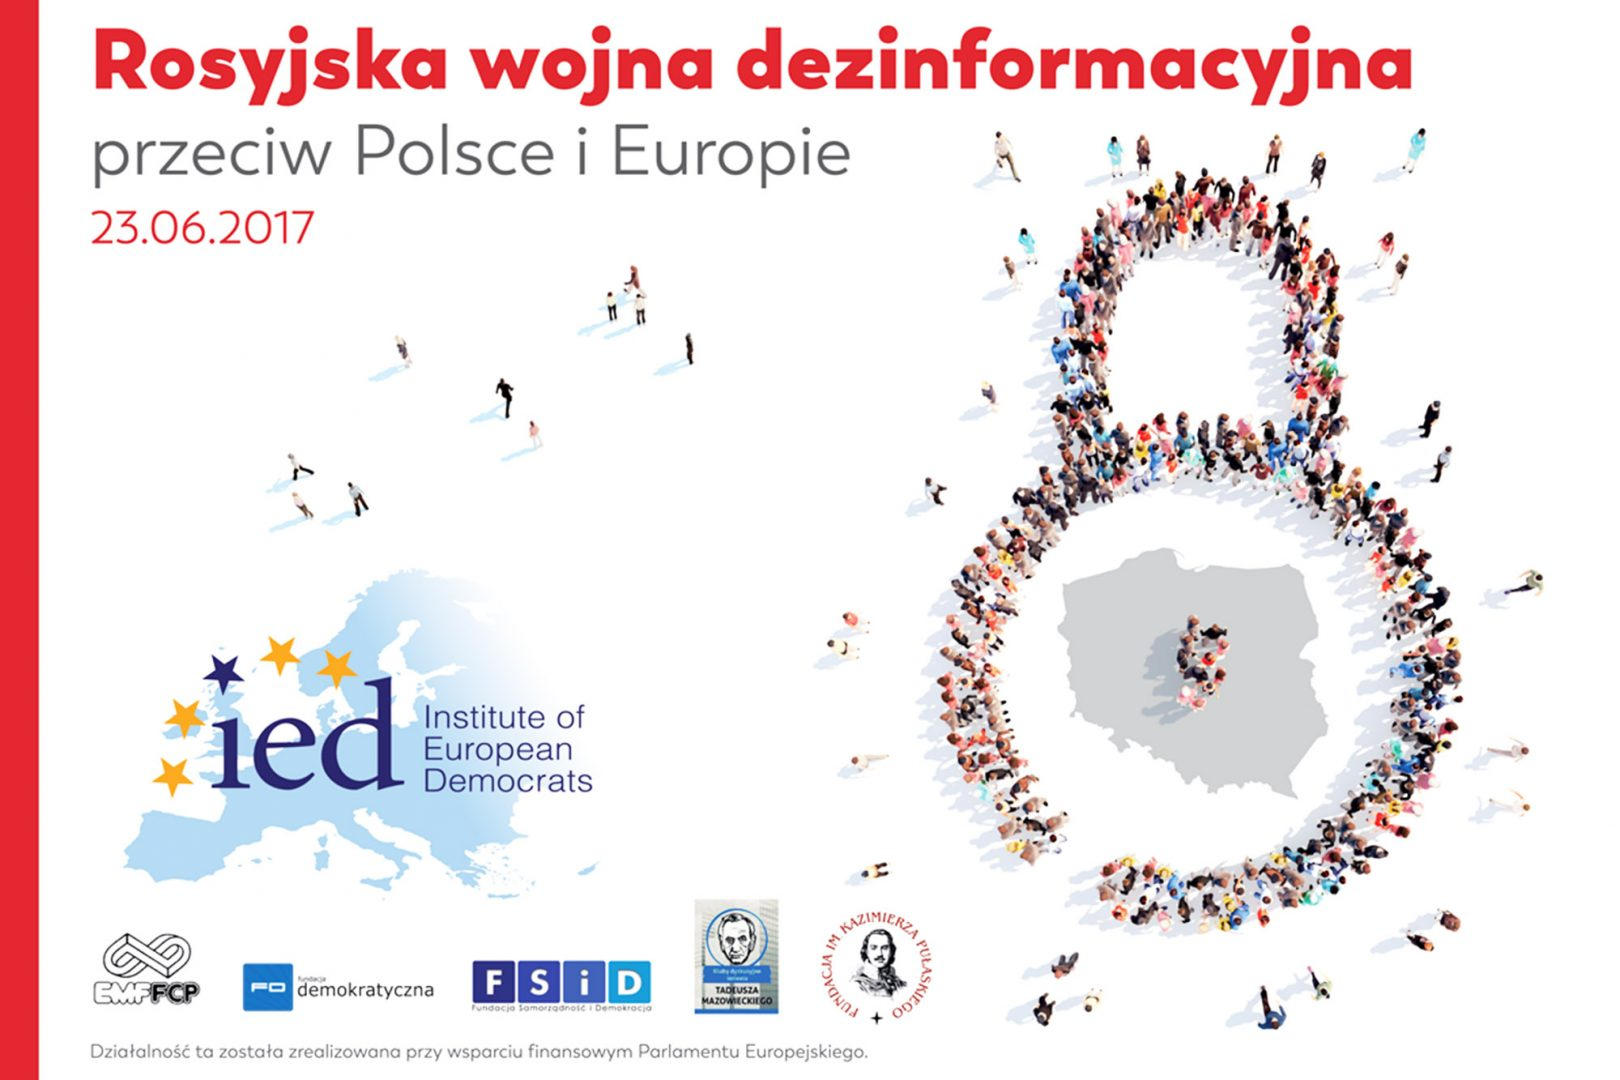 """Head of the Research Office at CPF Tomasz Smura to speak on conference """"Russian Disinformation War against Poland and Europe"""""""